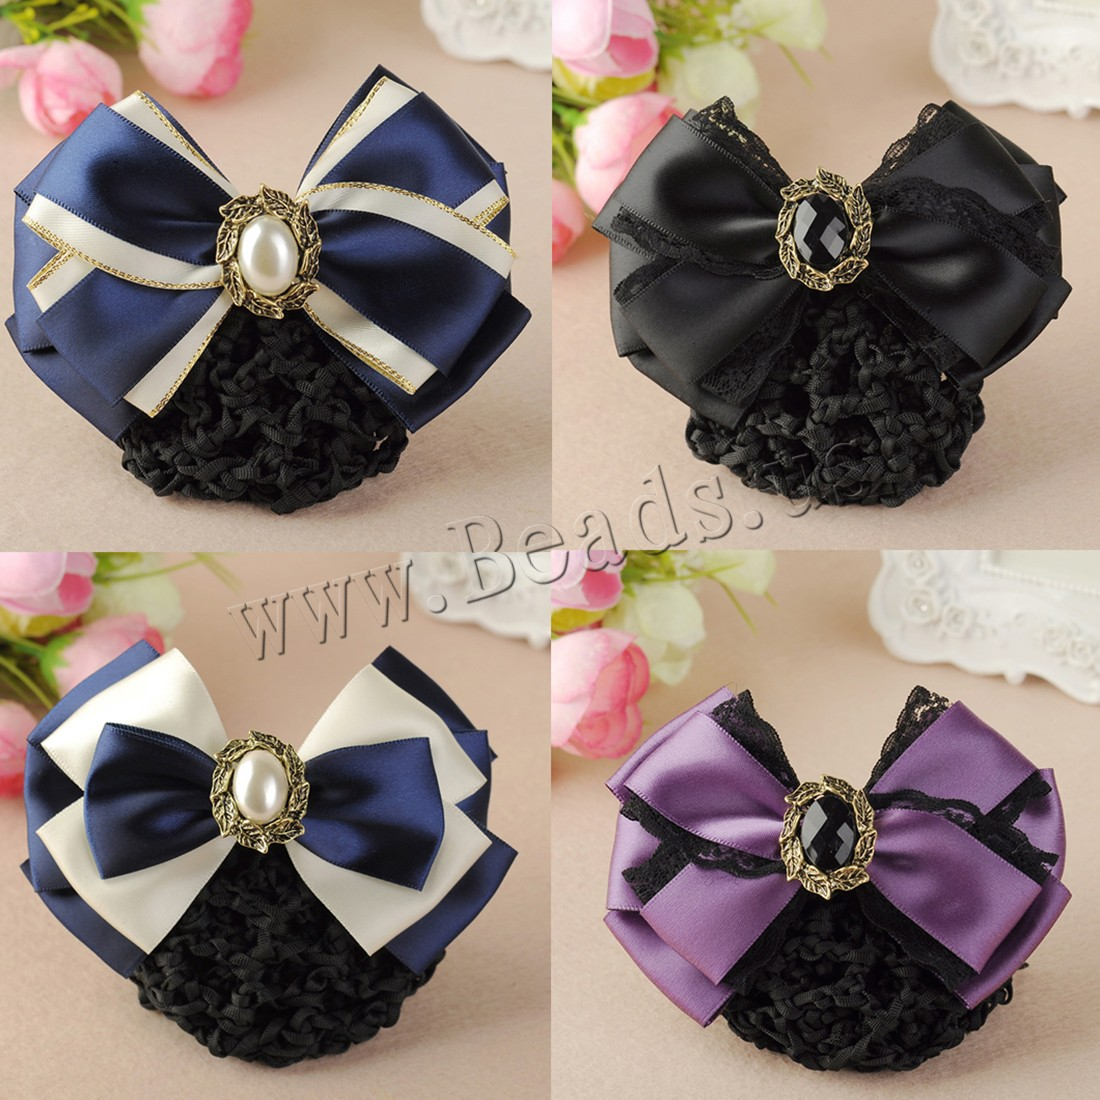 Buy Mixed Hair Accessories Polyester Crystal & Plastic Pearl & Iron & Zinc Alloy plated different styles choice & woman & faceted & rhinestone nickel lead & cadmium free 115x70mm Sold PC